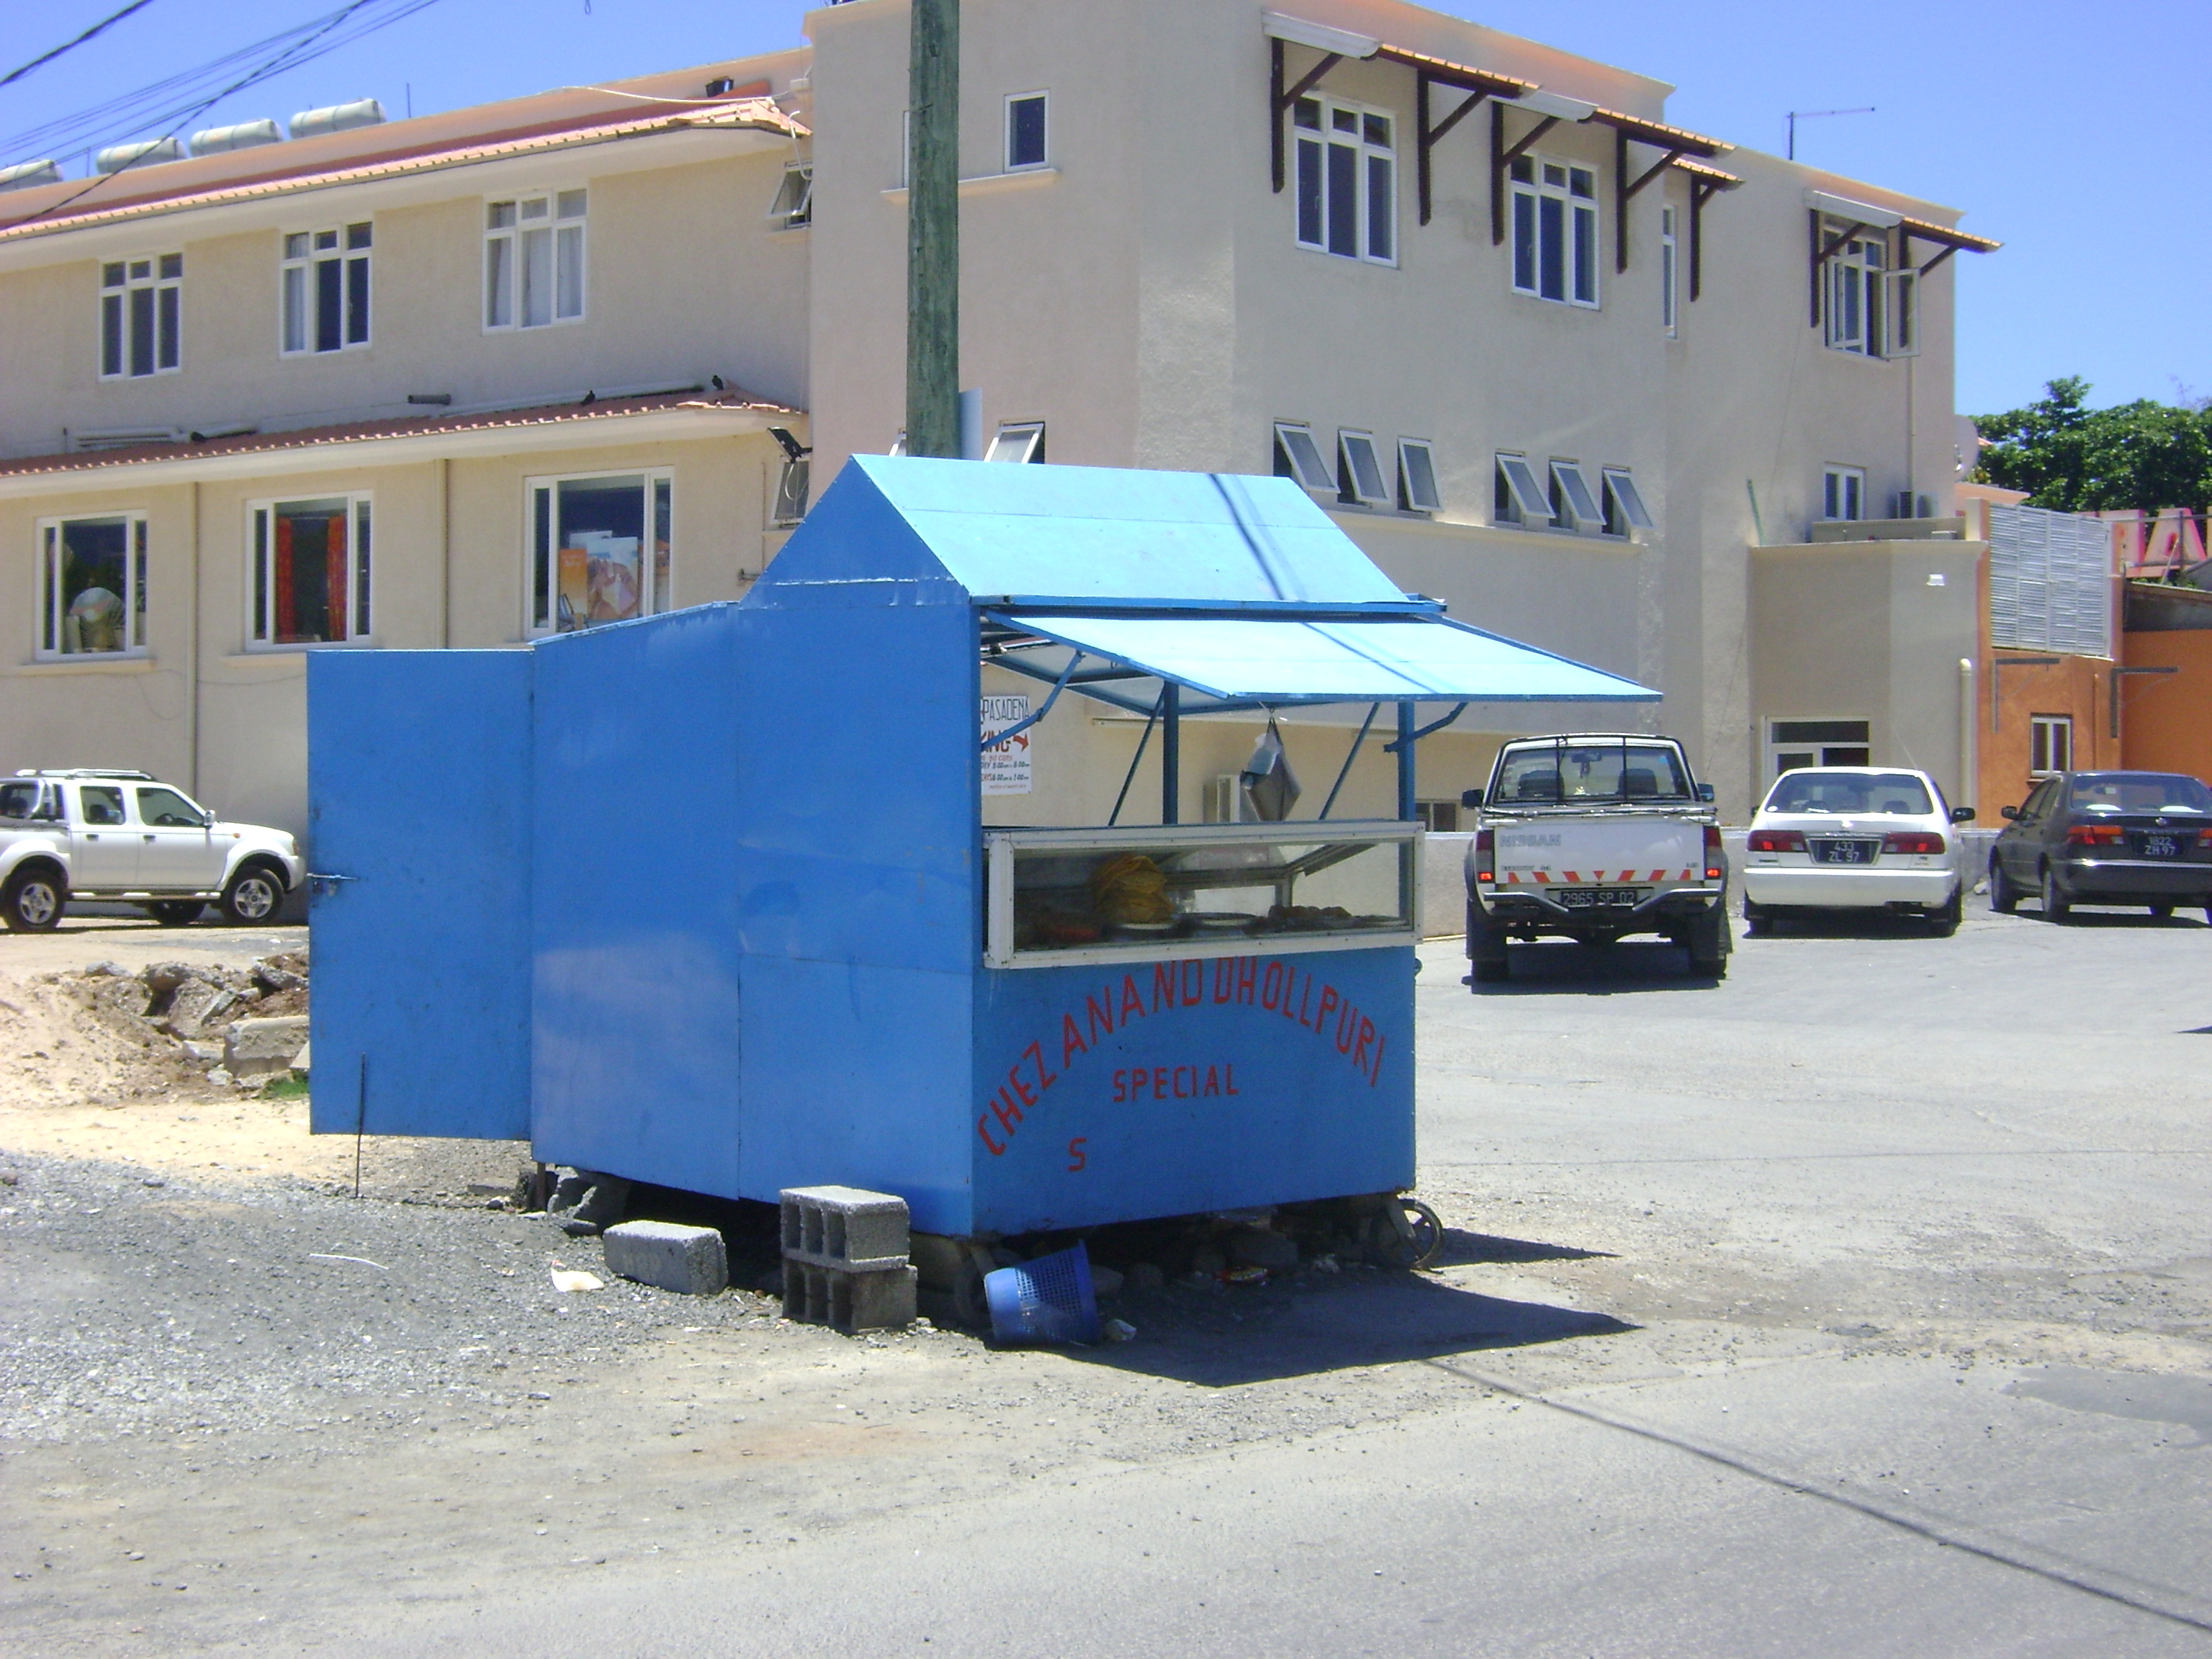 Street food stall in Mauritius. Photo by Wikipedia Commons.